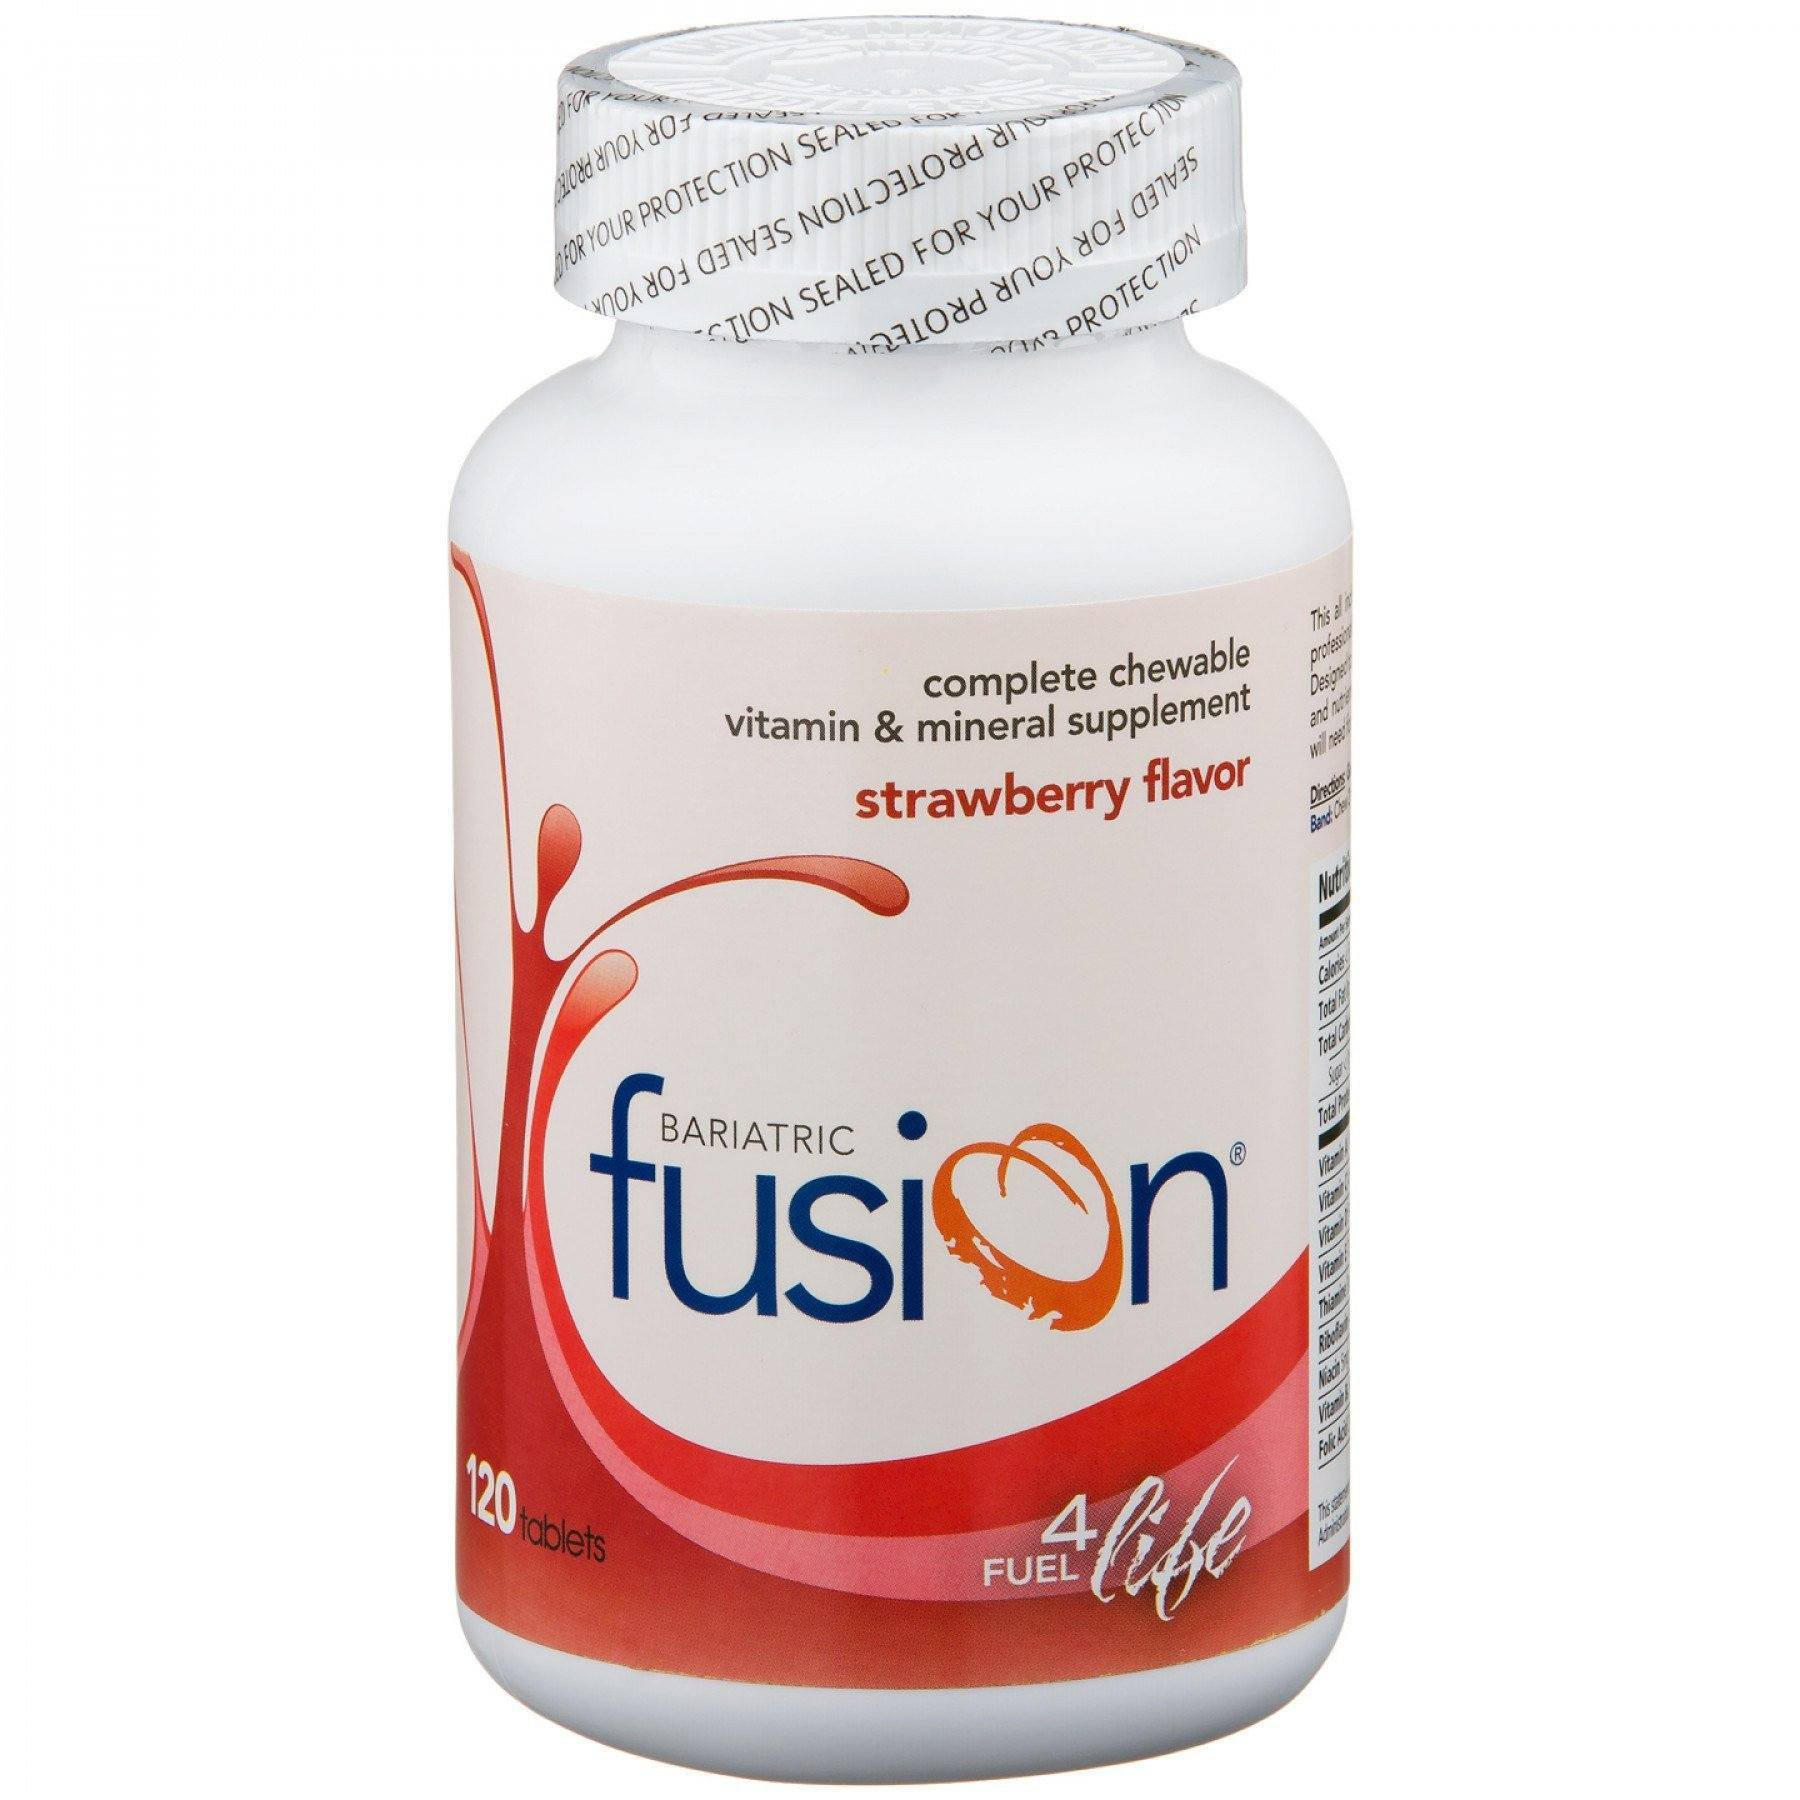 Bariatric Fusion Multivitamin and Mineral Supplement - Available in 5 Flavors!